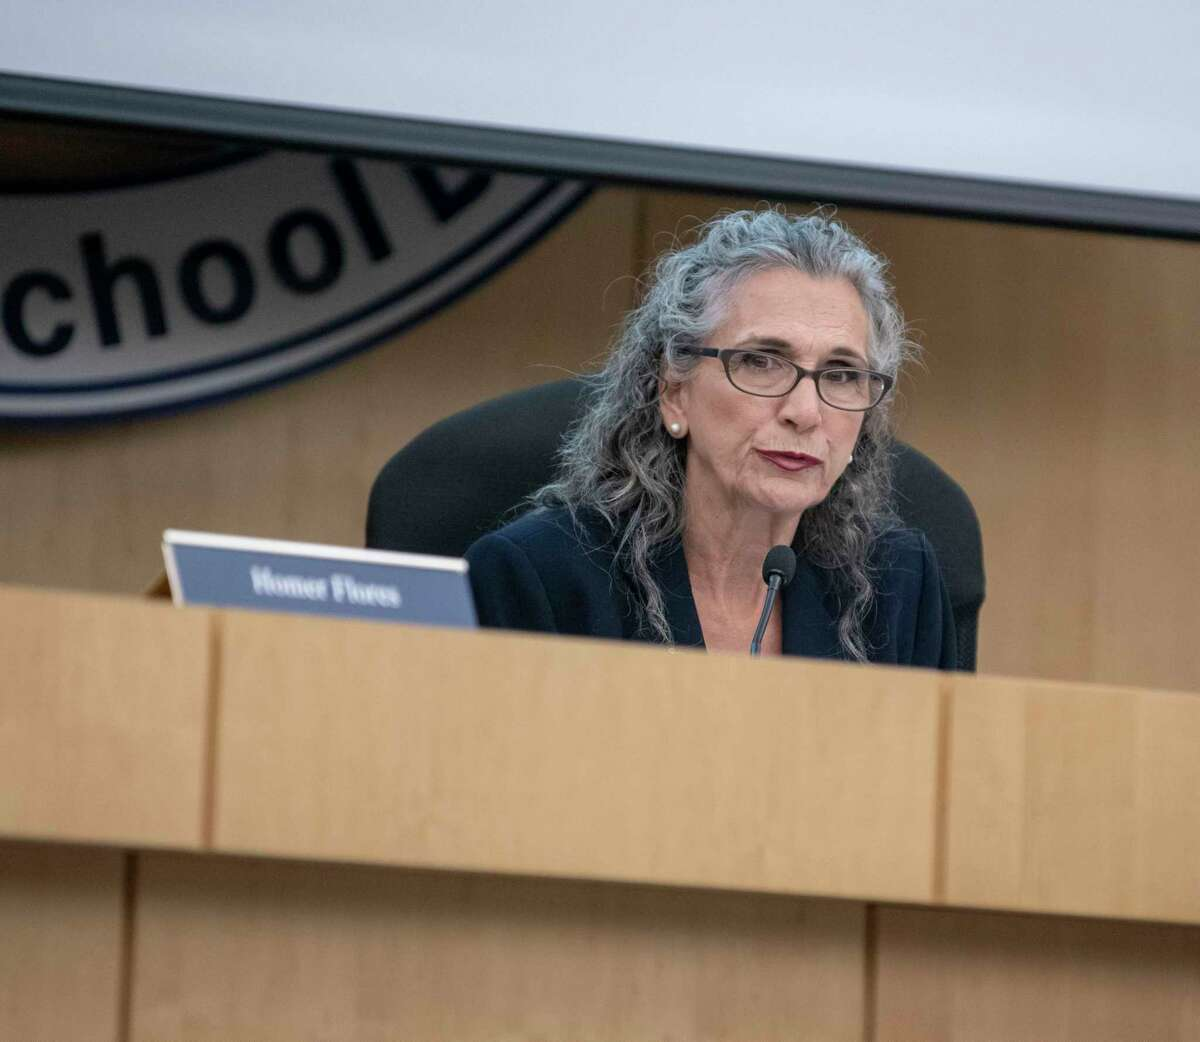 South San Antonio ISD trustee Connie Prado speaks during a special meeting on Sept. 9, 2019. Prado, 71, is seeking the District 4 seat on the Alamo Colleges board.